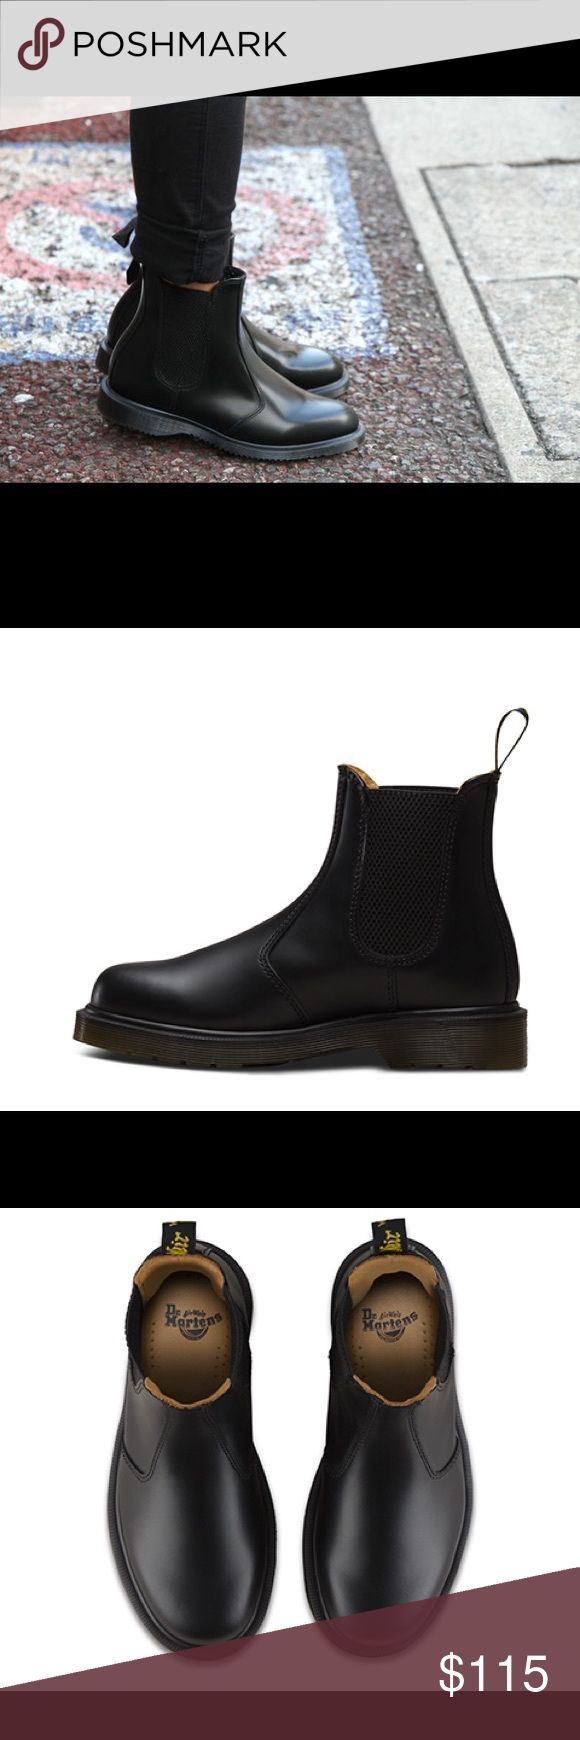 Dr martens Chelsea boots (black) Only wore a couple times, in great condition. The boots and the leather are very beautiful.US women's size7/ UK women's size5 Dr. Martens Shoes Ankle Boots & Booties